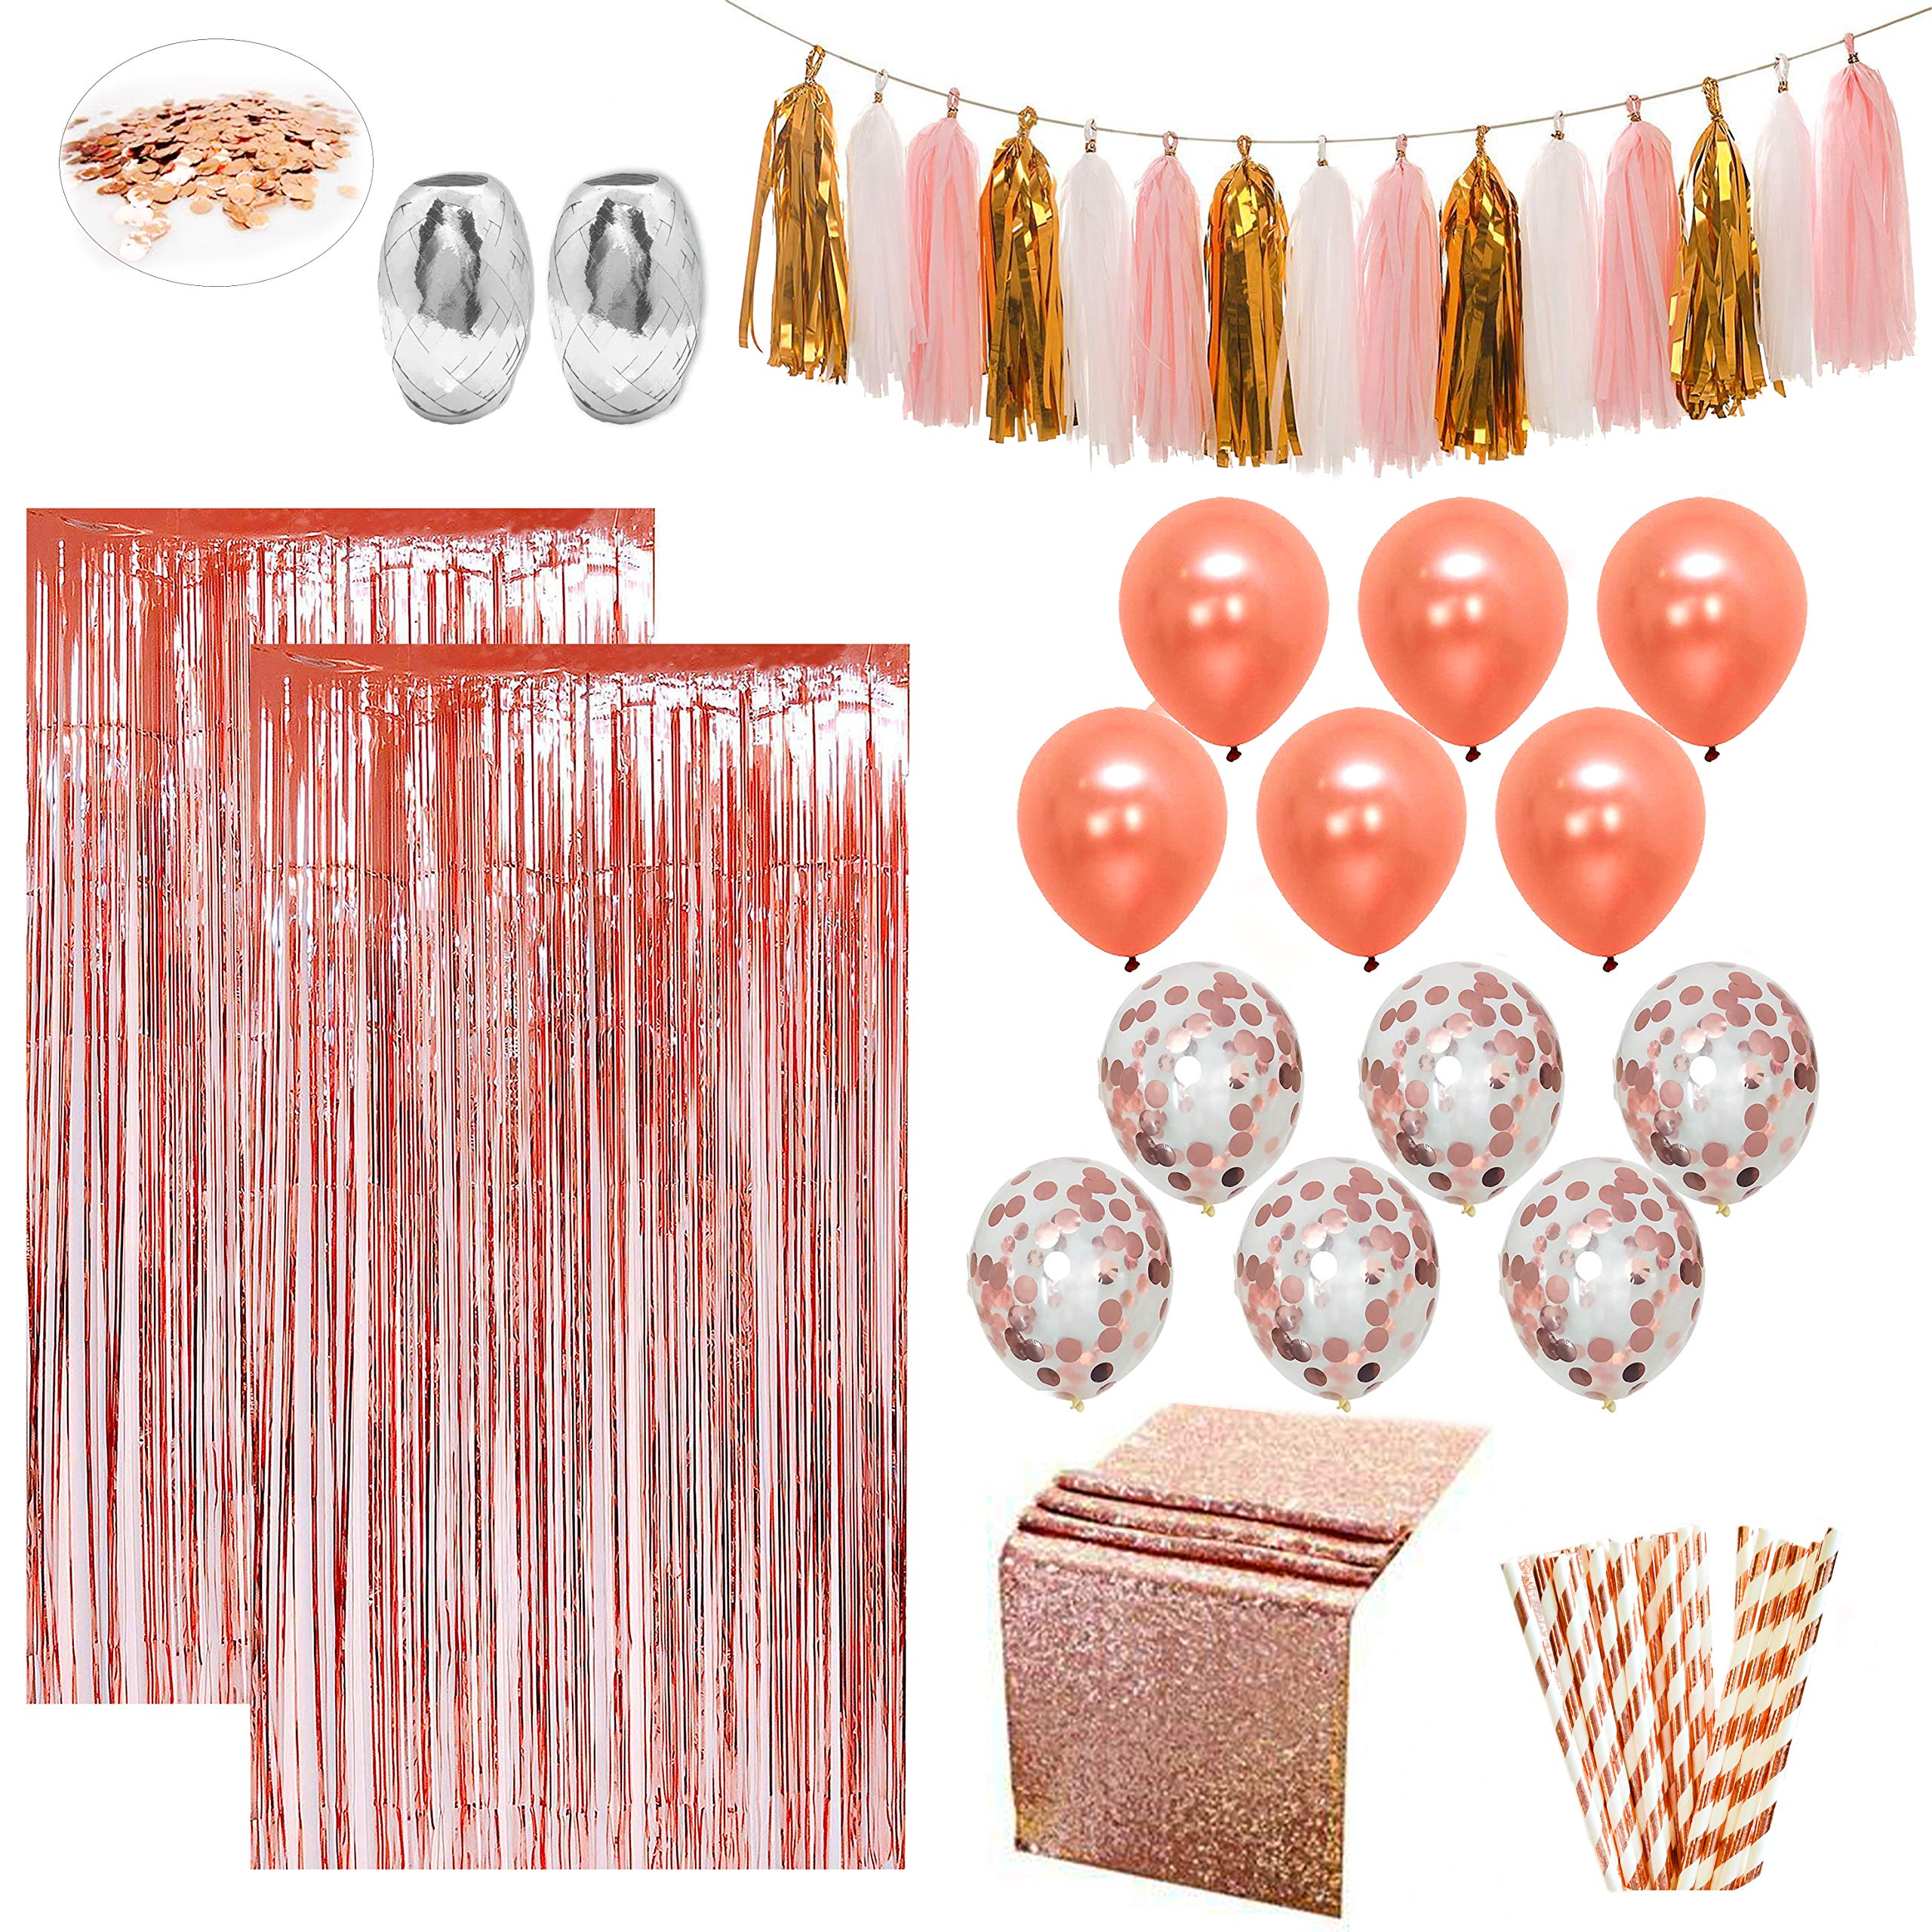 Rose Gold Party Decorations by Serene Selection, for Birthday Decoration Kit, Bridal Shower, Baby Shower Wedding Graduation Decor Set, Bachelorette Supplies, Balloons, Rose Gold Curtains